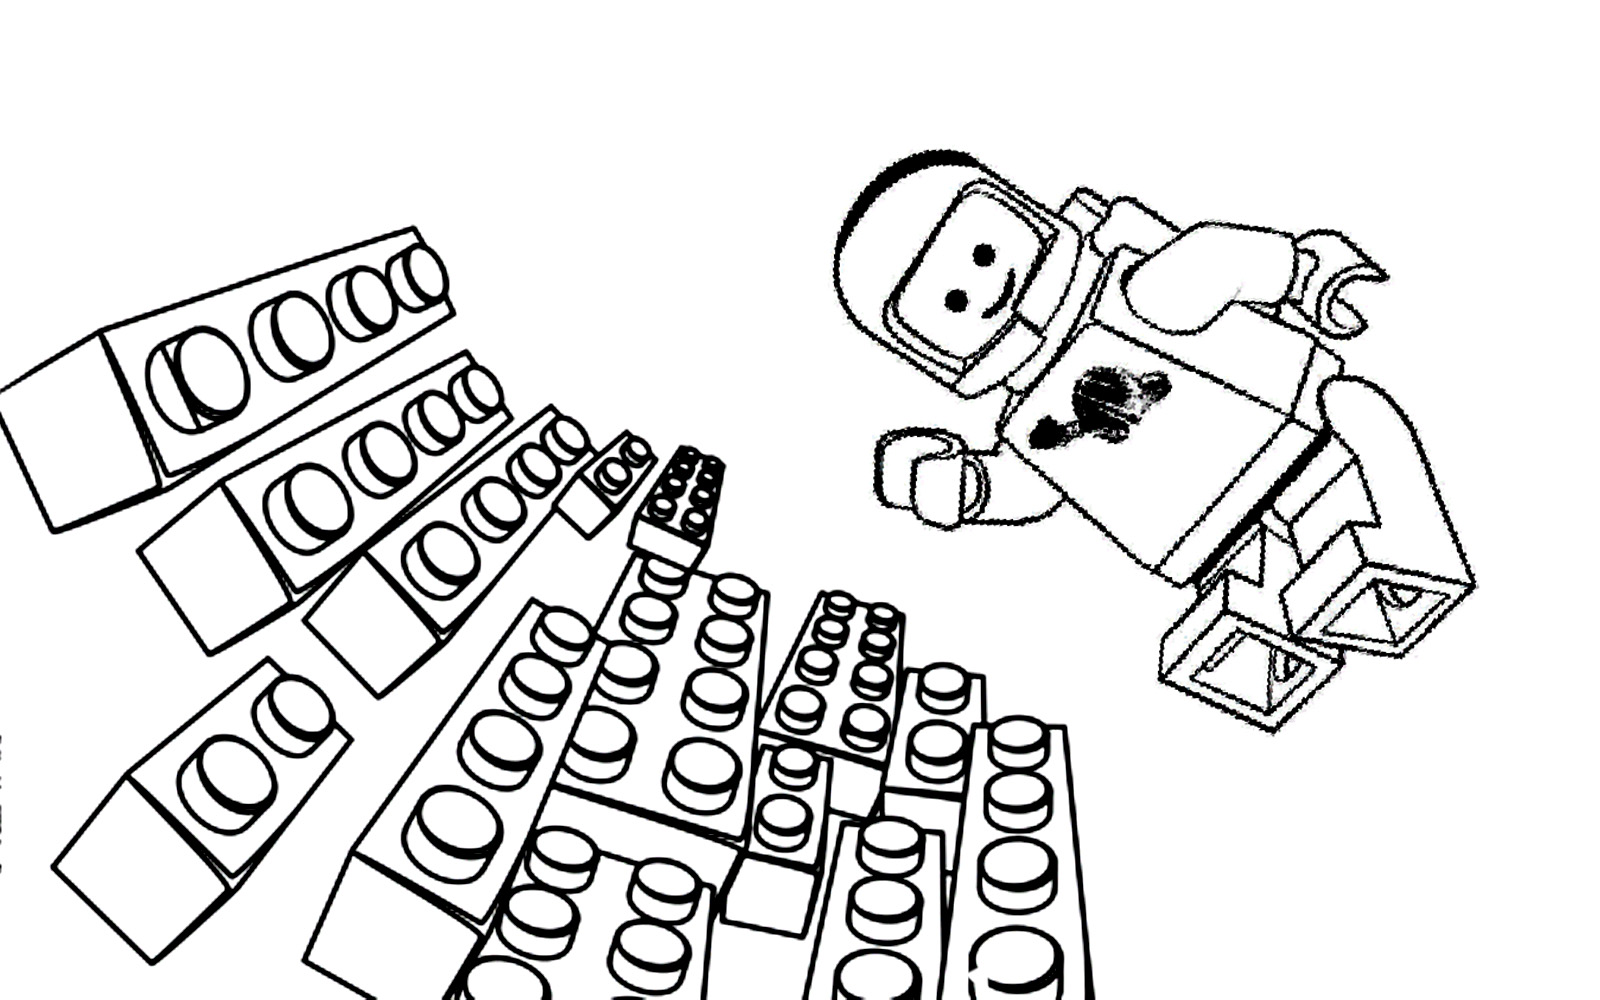 Cute Free Lego The Big Adventure Coloring Page To Download